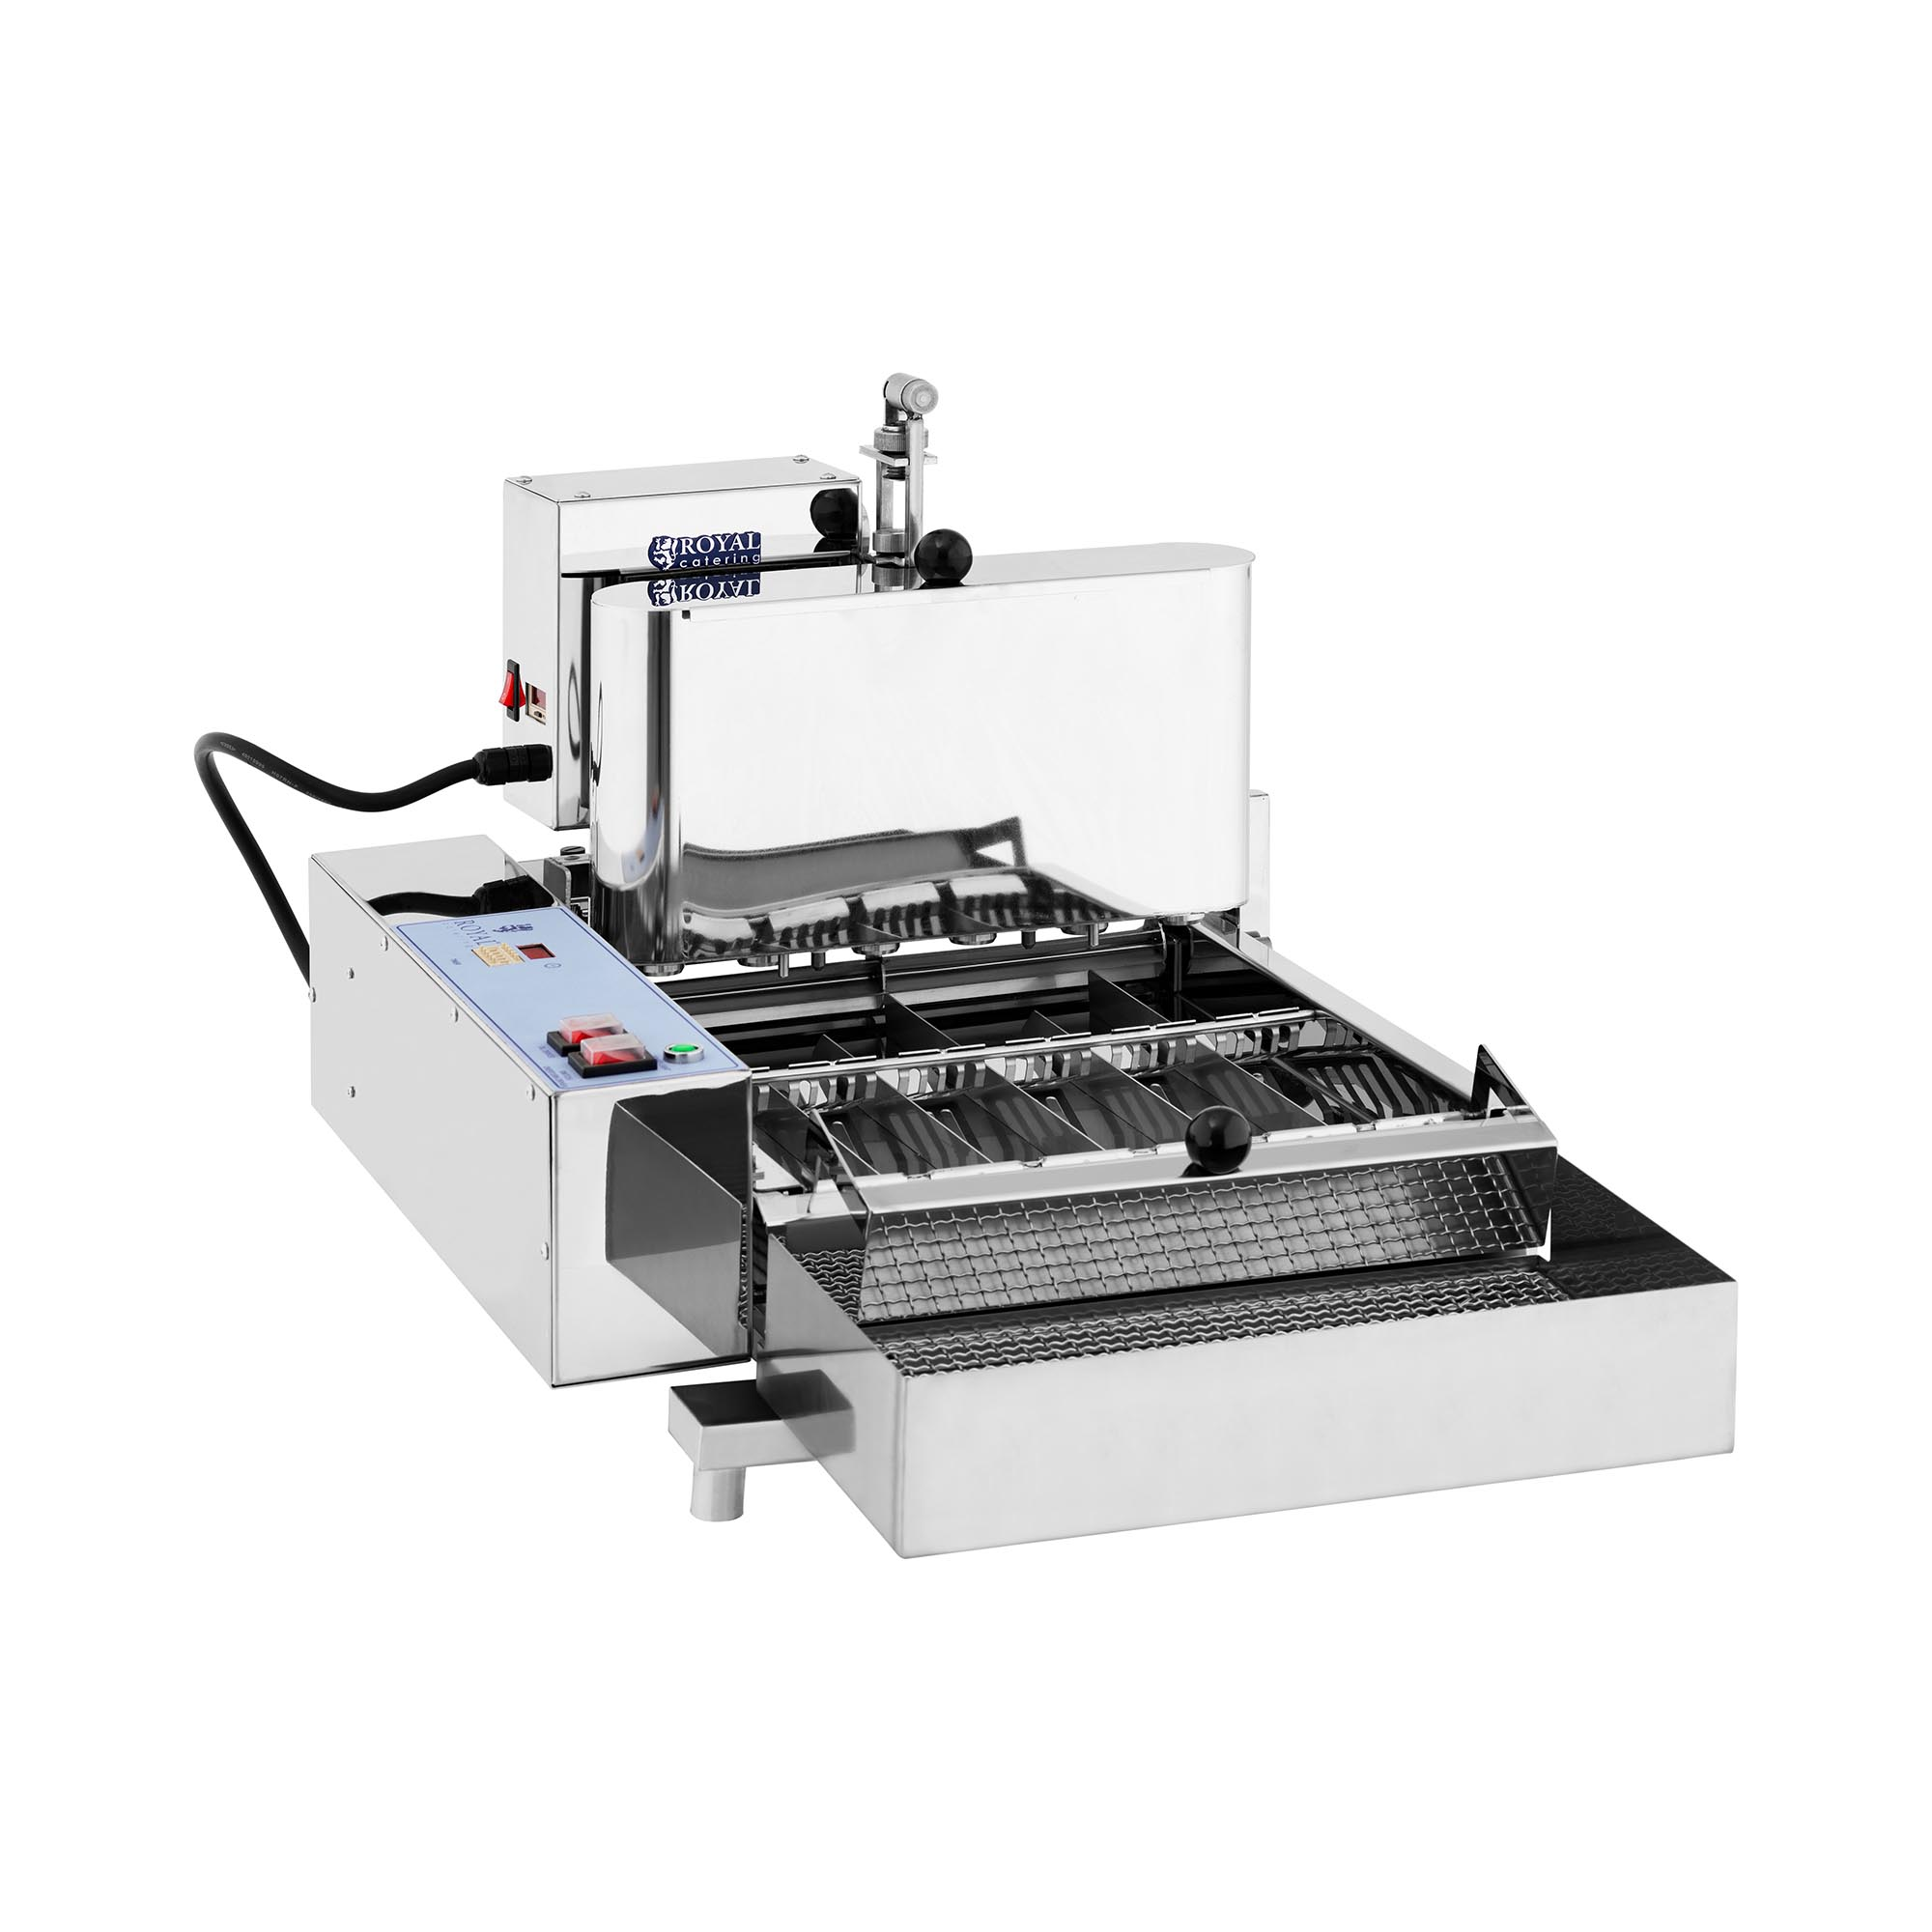 Donut-Maschine - 2.800 W - Royal Catering - 1440 Donuts/h RC-DM06